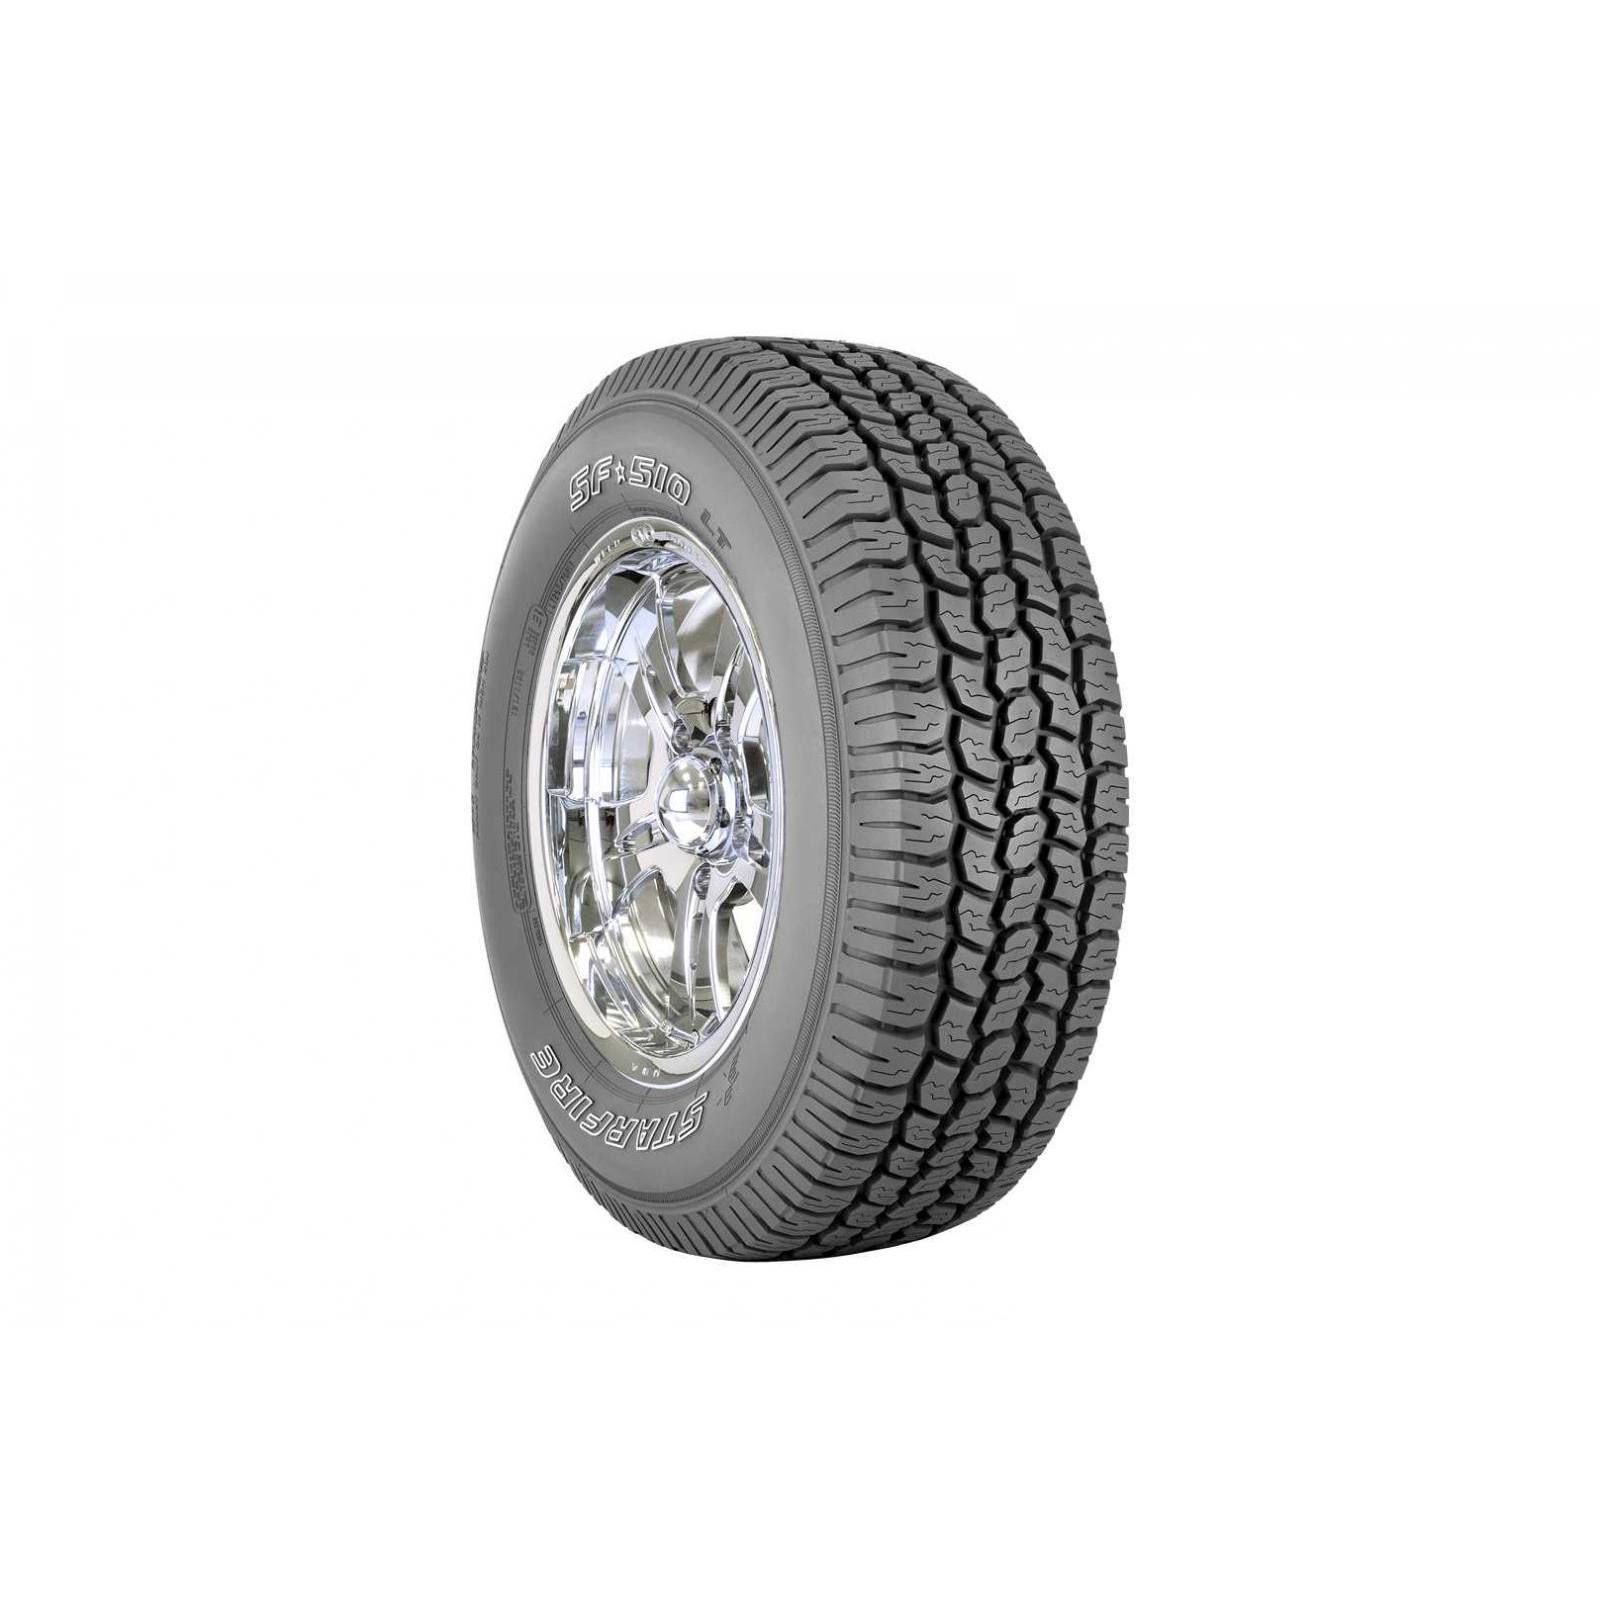 Starfire SF-510 All Season Tire - 255/70R16 111S (Black)